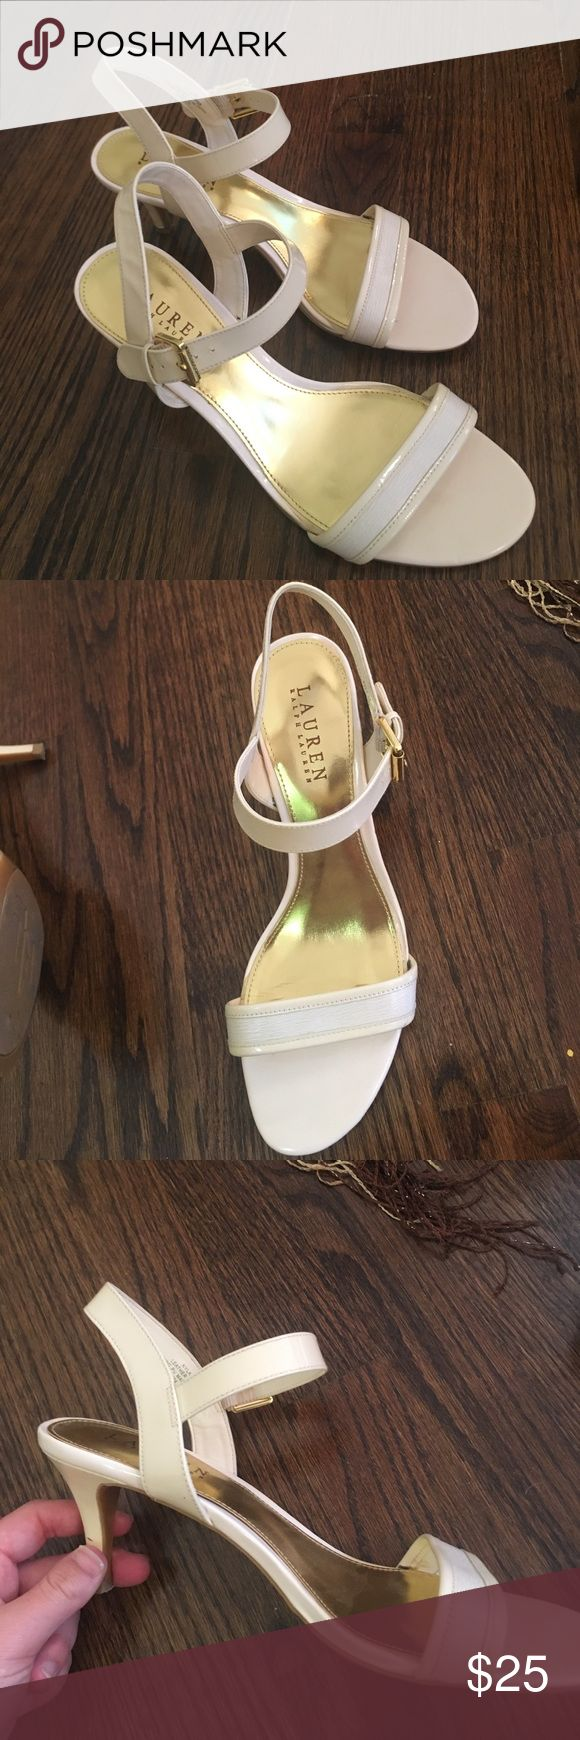 Cream Ralph Lauren Heels gently worn cream Ralph Lauren heels. About 2 inch heels. Classic two strap heels. Very comfortable. A few scuffs on the heel and sole but when wearing look almost new! Gold sole. Toe strap is two-toned and the middle is textured, as seen in picture. Very good quality shoes. Lauren Ralph Lauren Shoes Heels